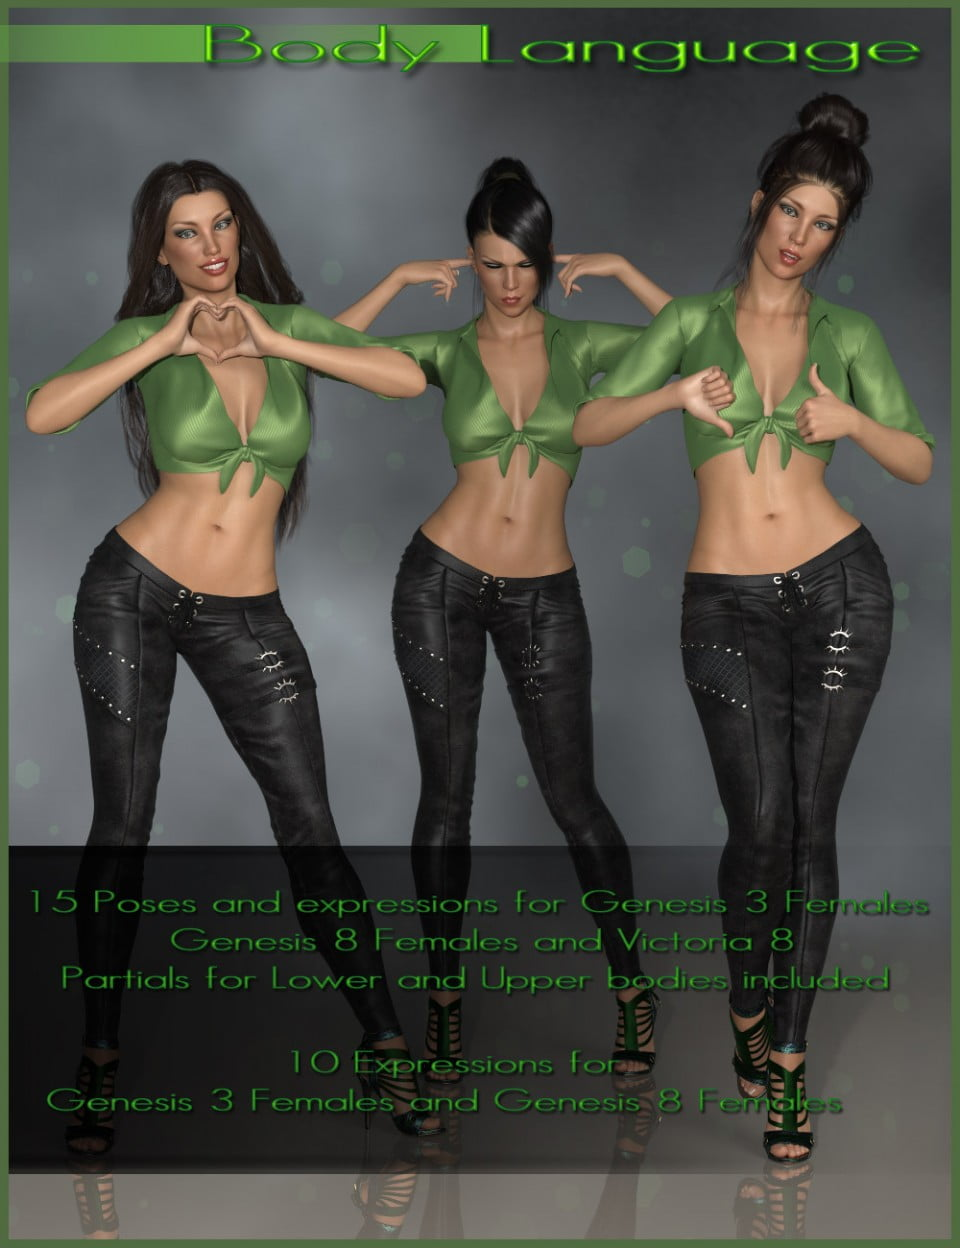 Body Language – Poses and Expressions for Genesis 3 and 8 Female(s)